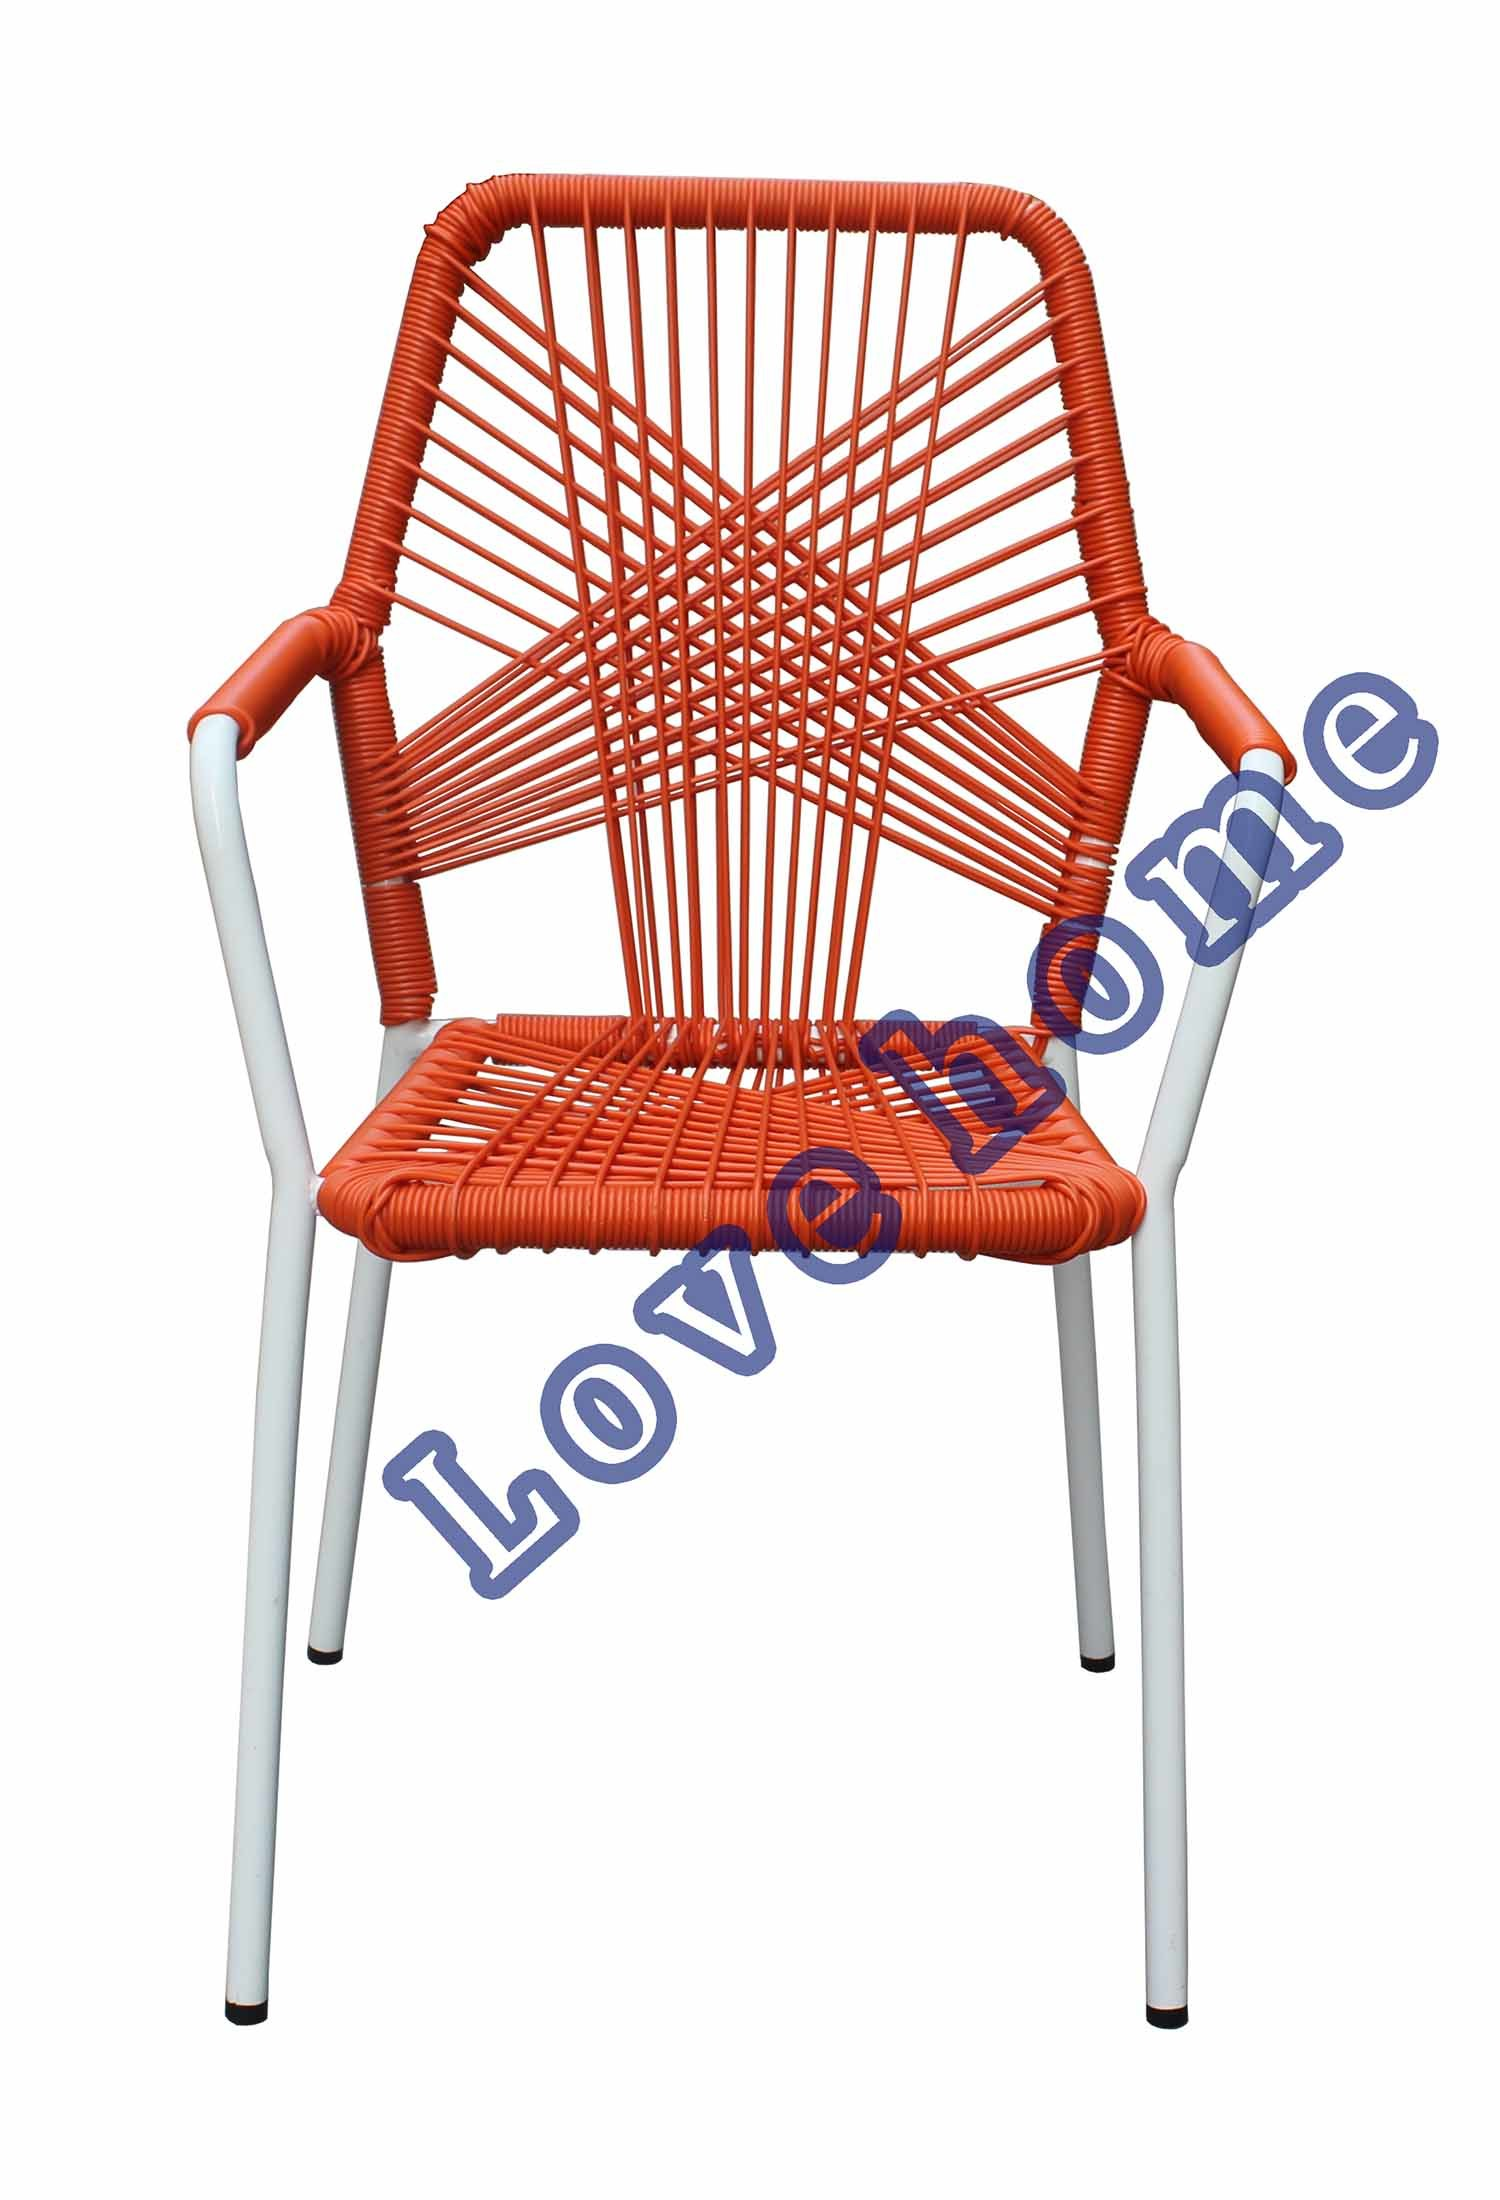 china modern leisure acapulco lounge vermont outdoor dining chair